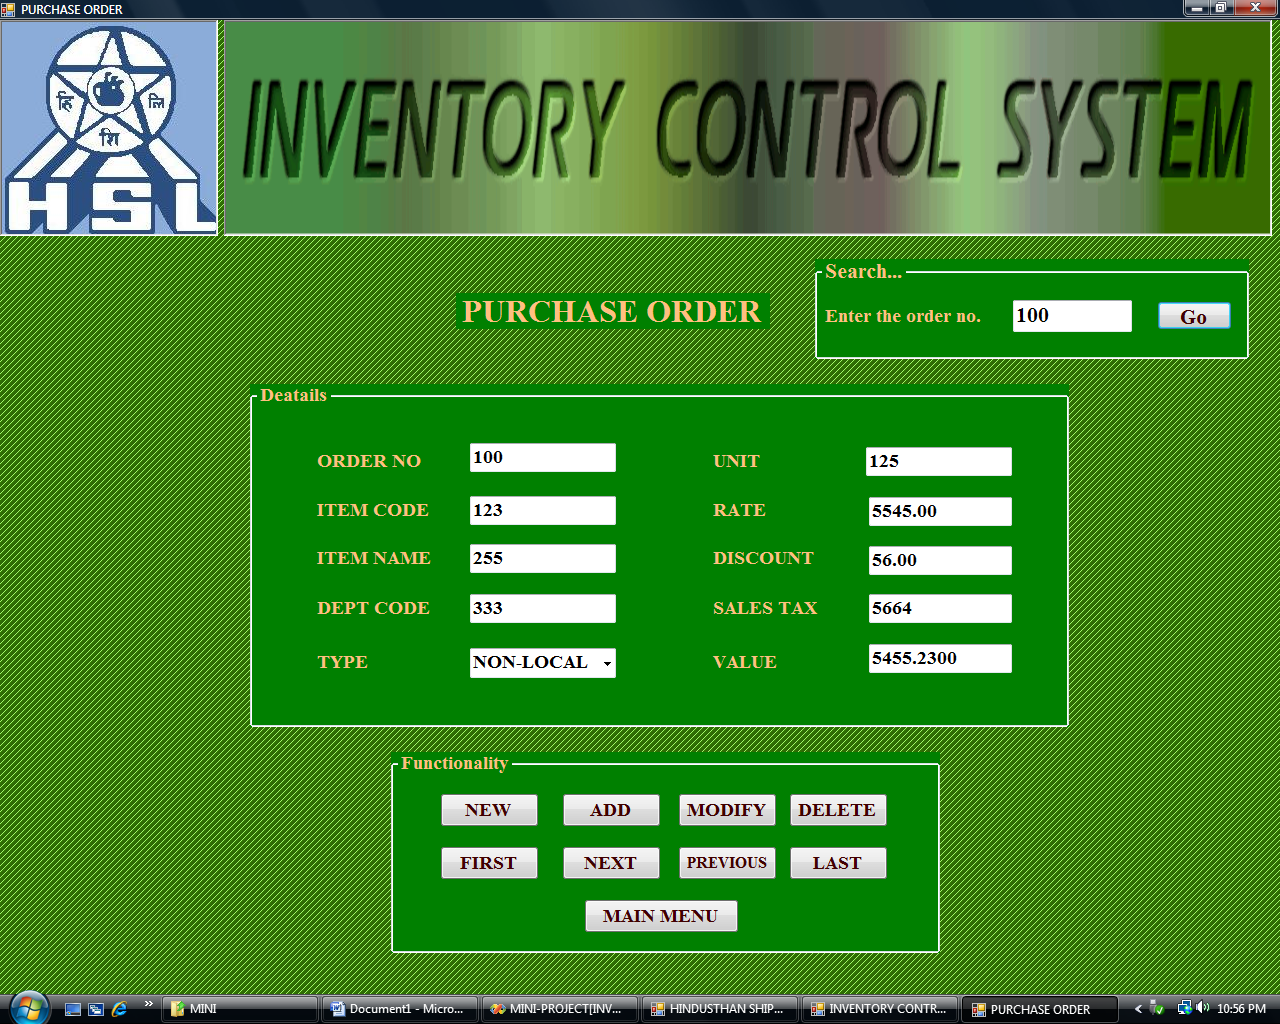 Inventory Control System purchase order form